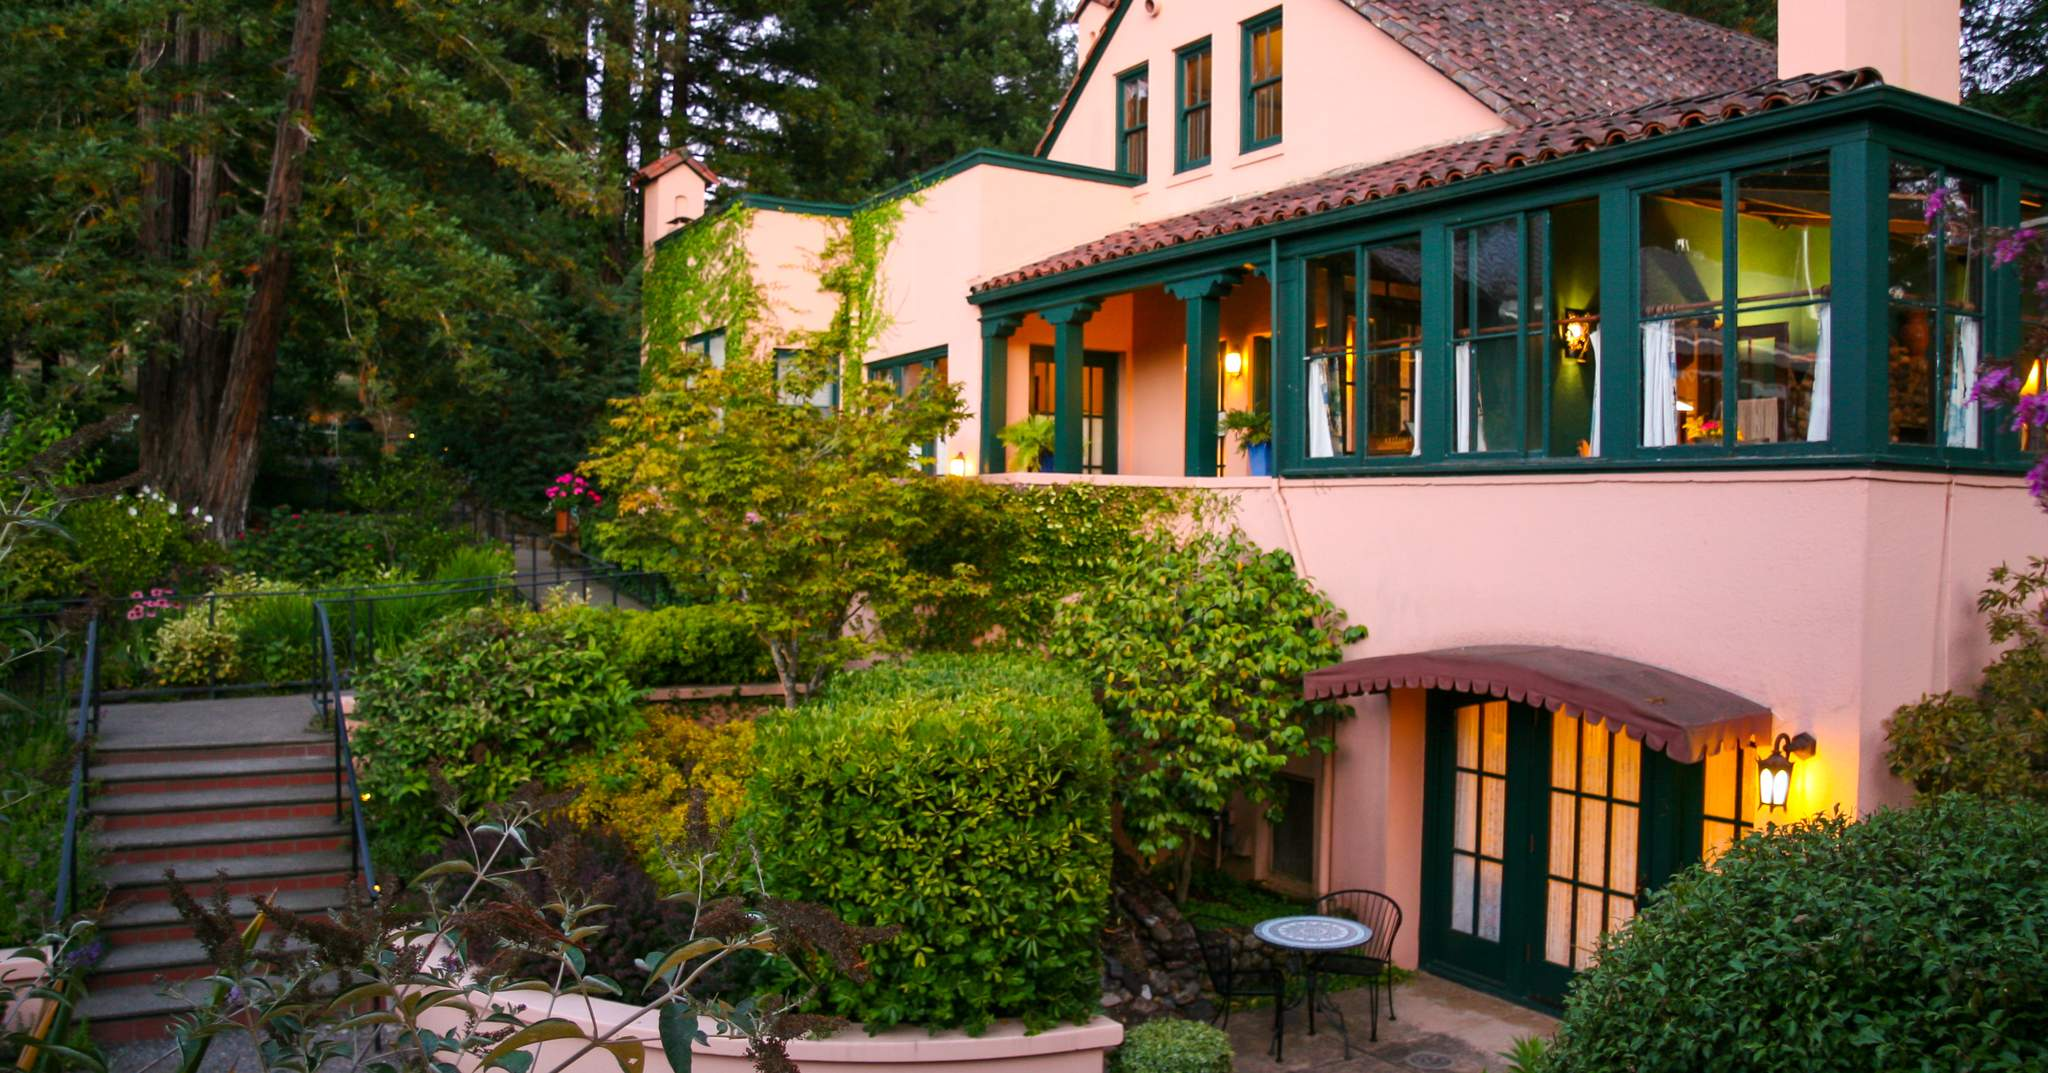 Applewood Inn Restaurant And Spa In Guerneville Sonoma